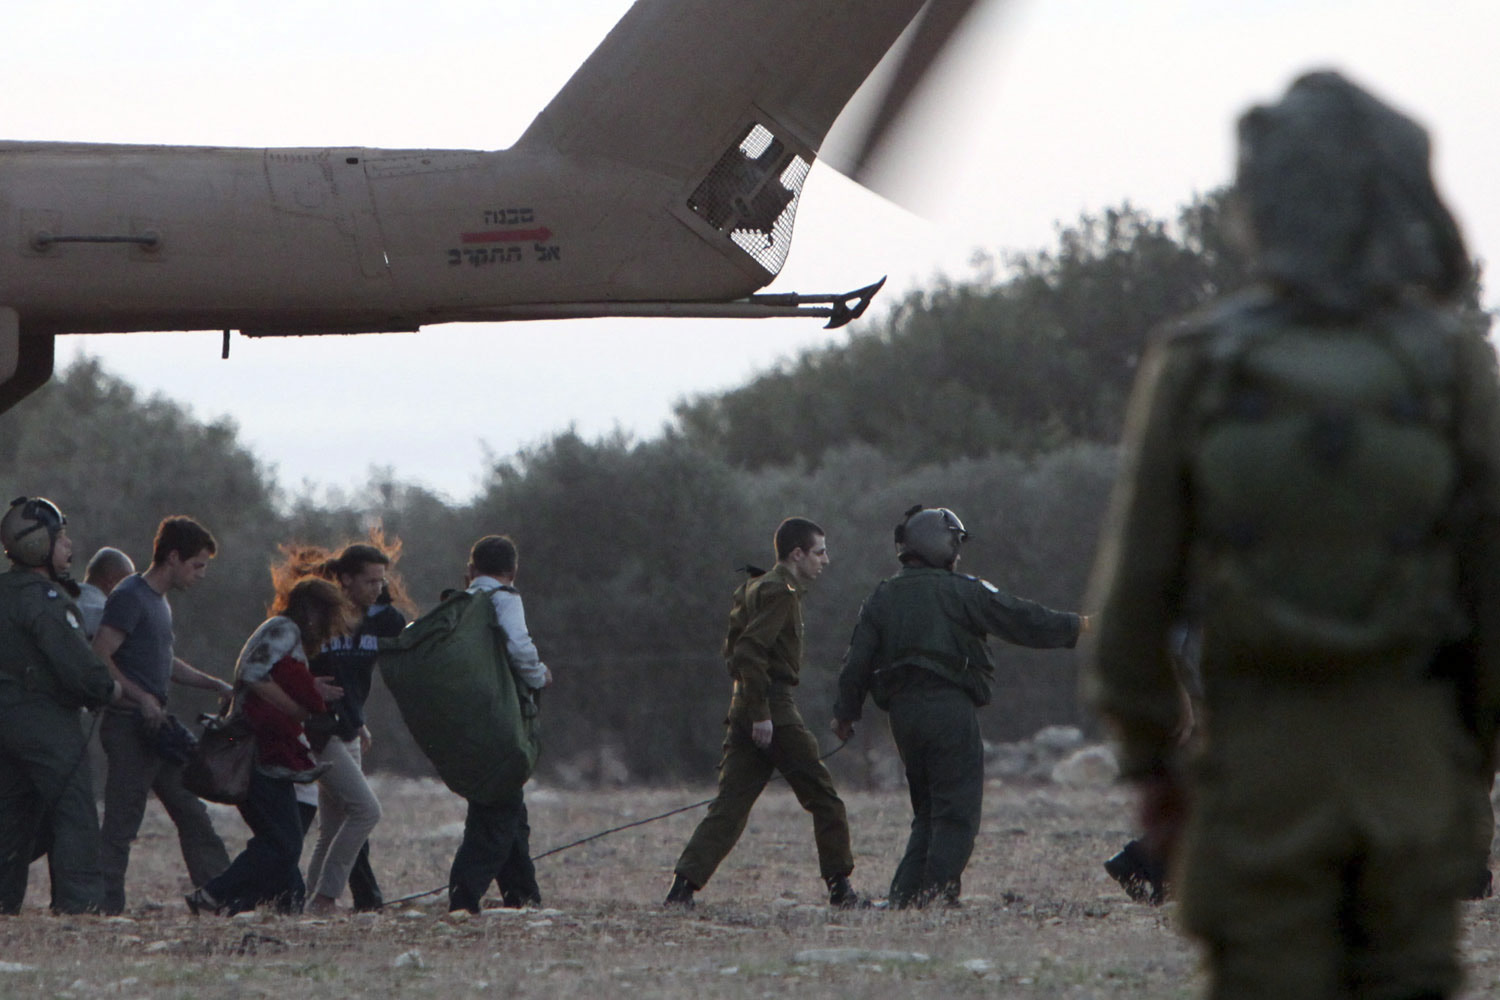 October 18, 2011. In the company of members of his family, Israeli solider Gilad Shalit is guided from an army helicopter. After being captured by Hamas militants in 2006 and spending five years in captivity in Gaza, Shalit was freed in exchange for the release of more than 1,000 Palestinians from Israeli jails.